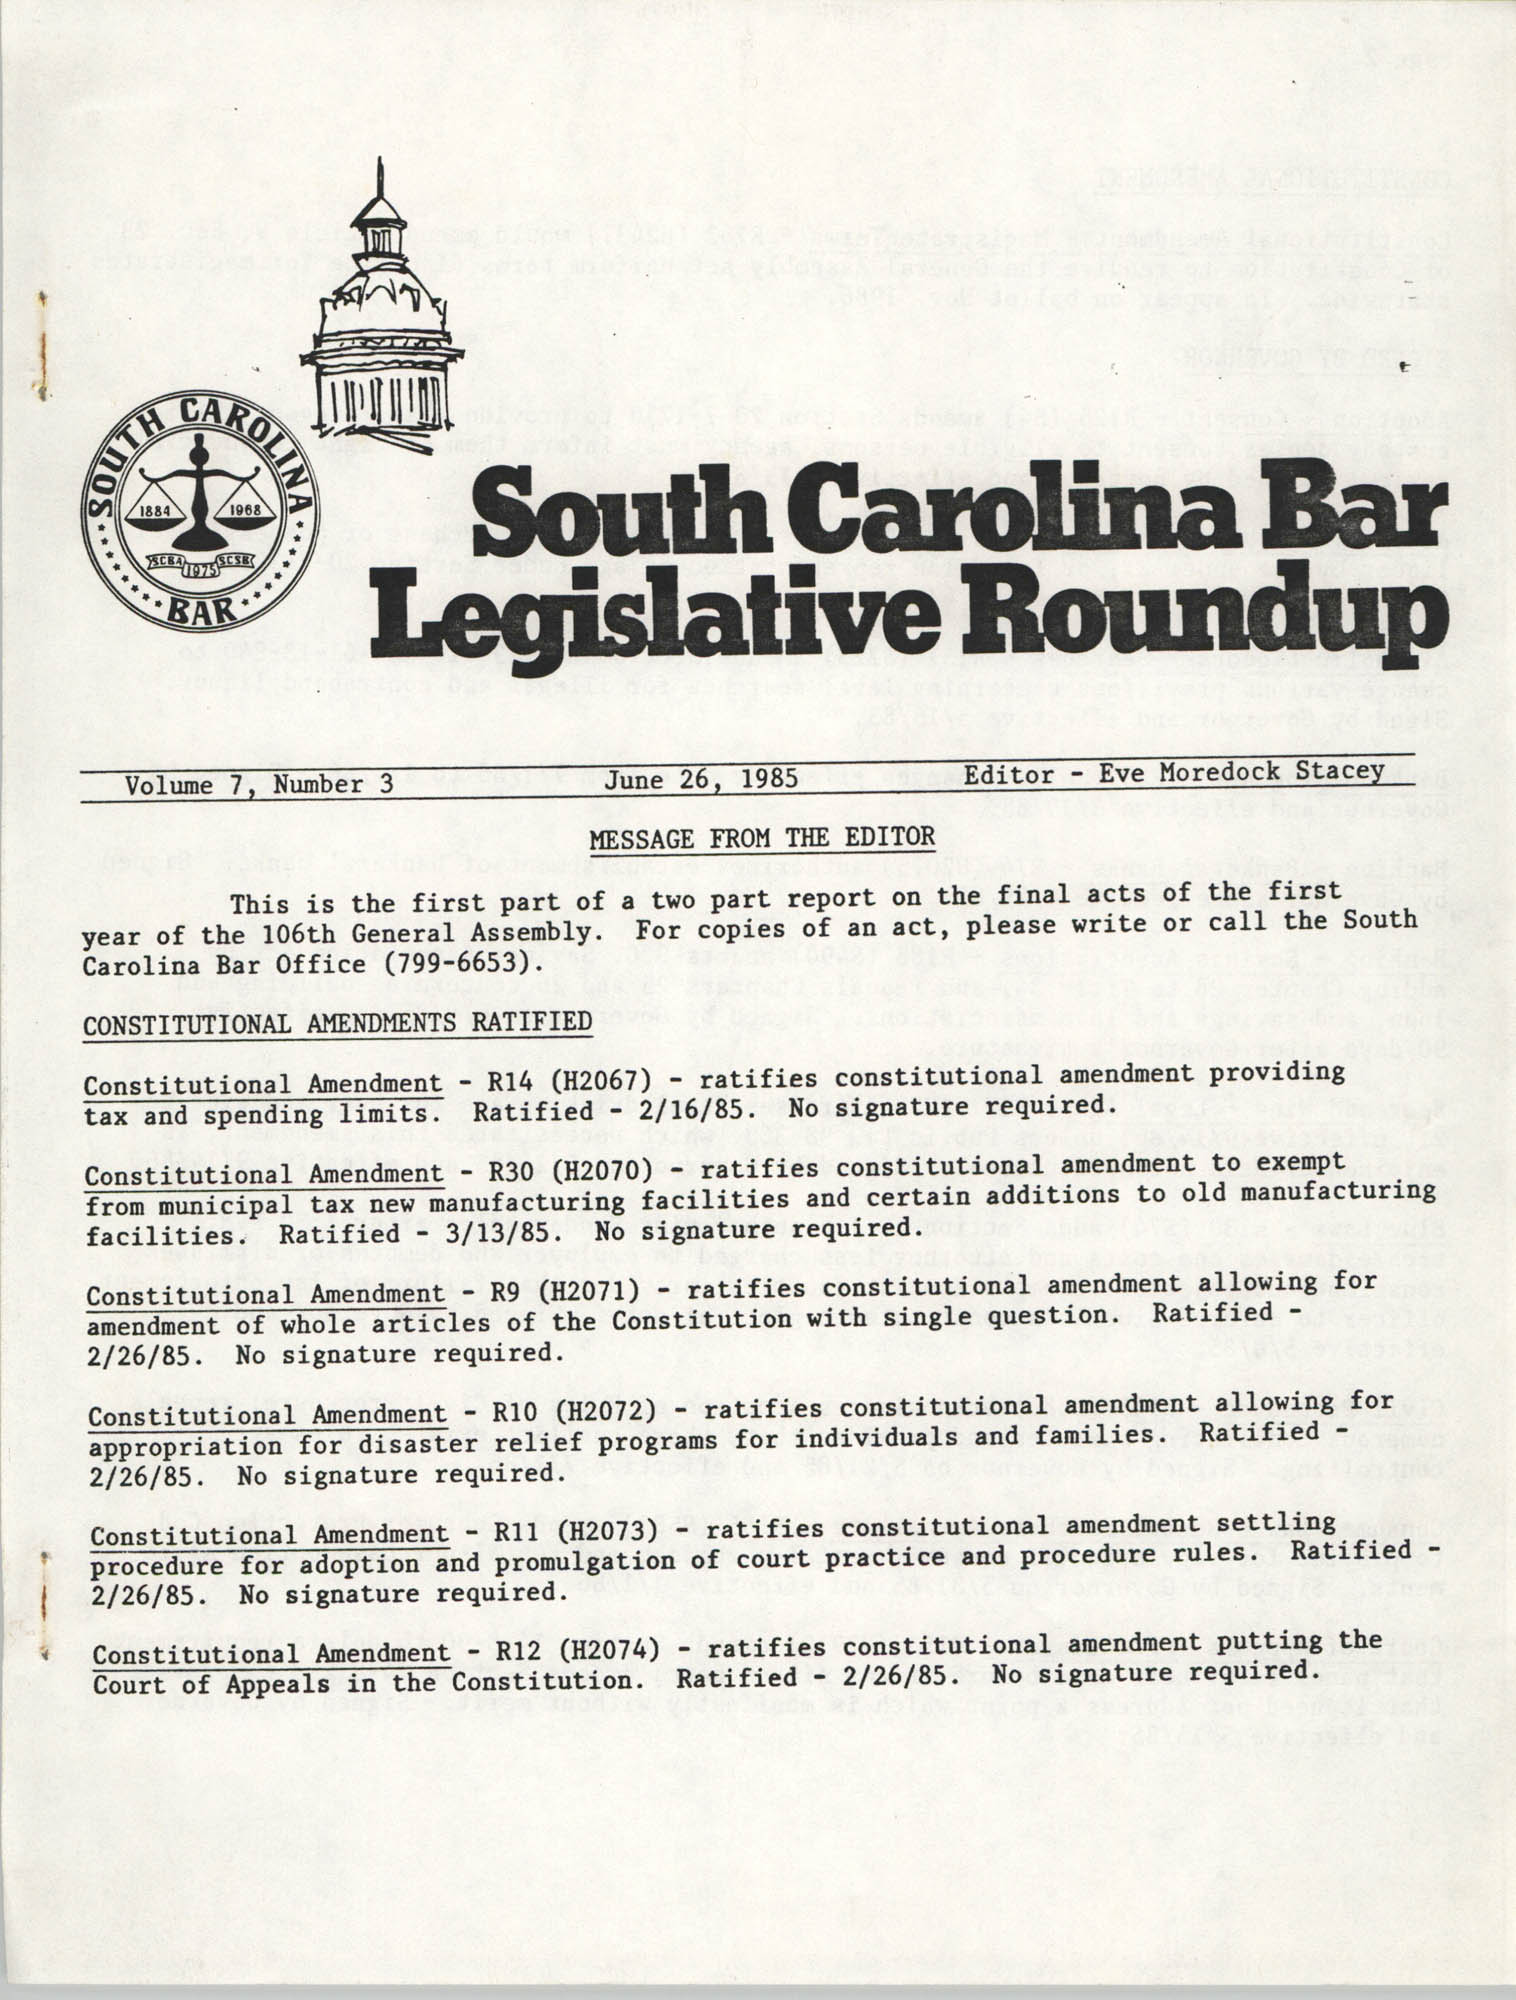 South Carolina Bar Legislative Roundup, Vol. 7 No. 3, June 26, 1985